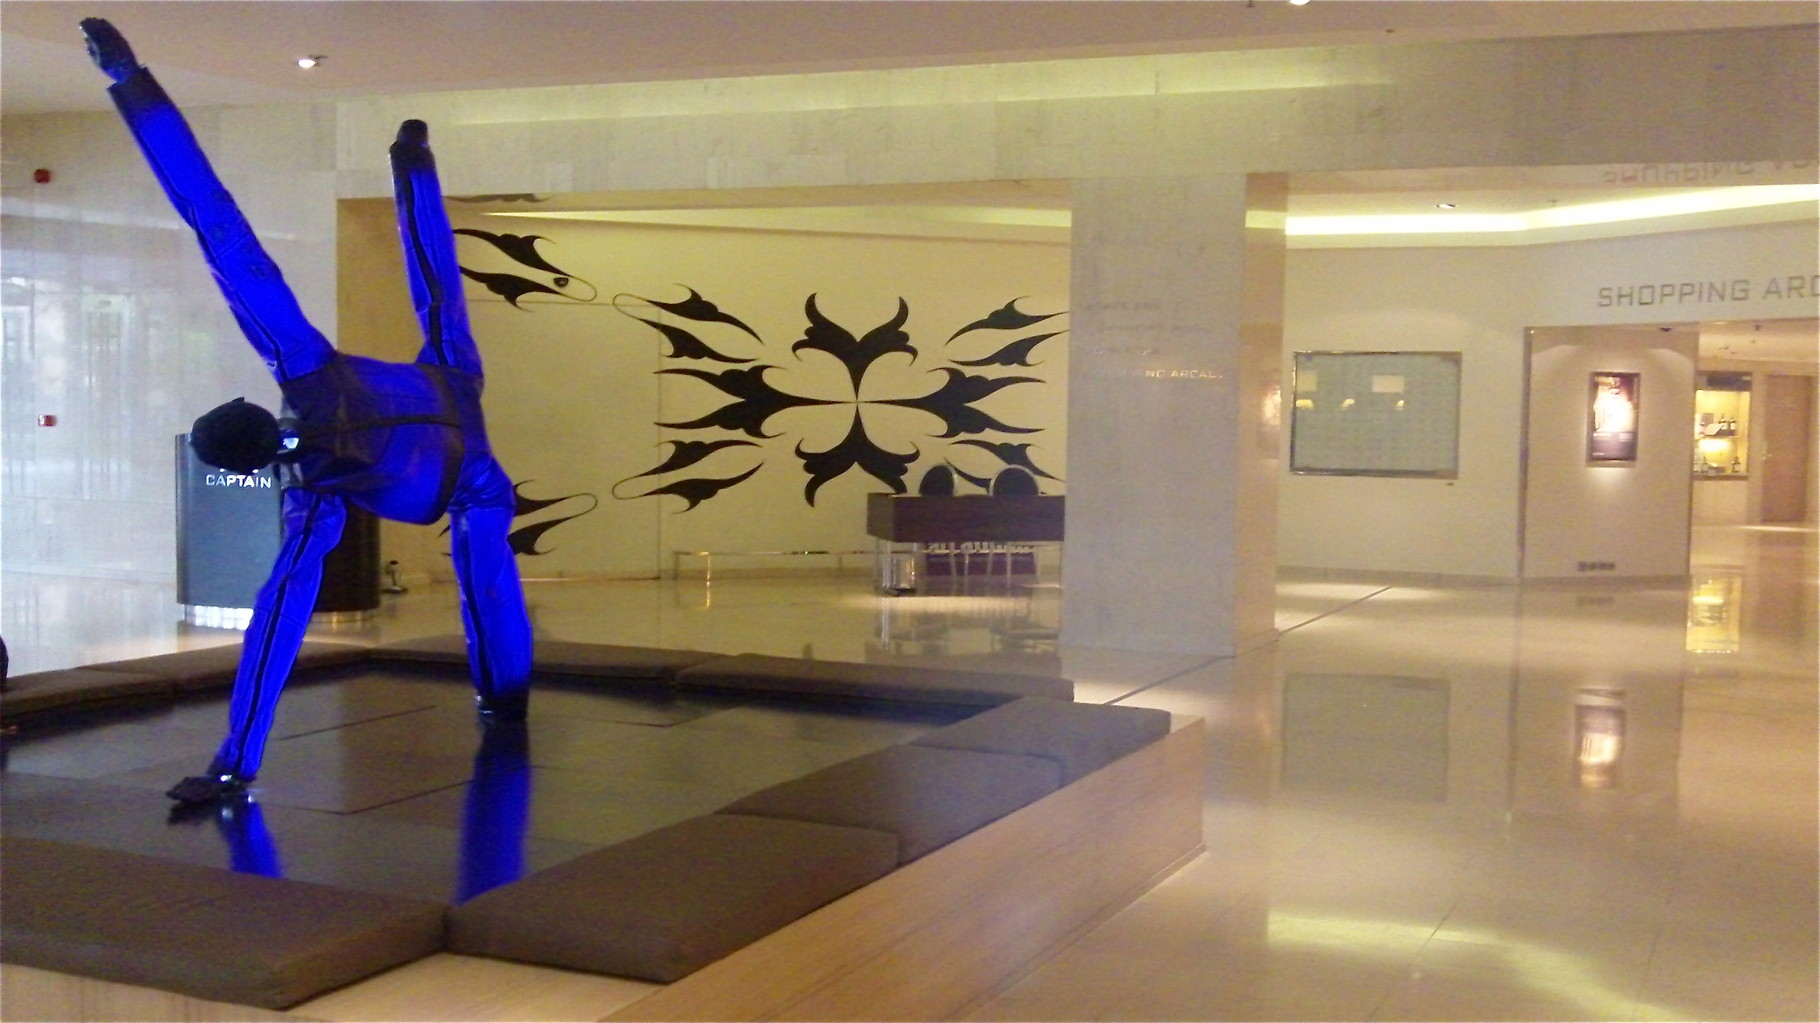 Sculpture at our hotel, Intercontinental Atheneum Athens!